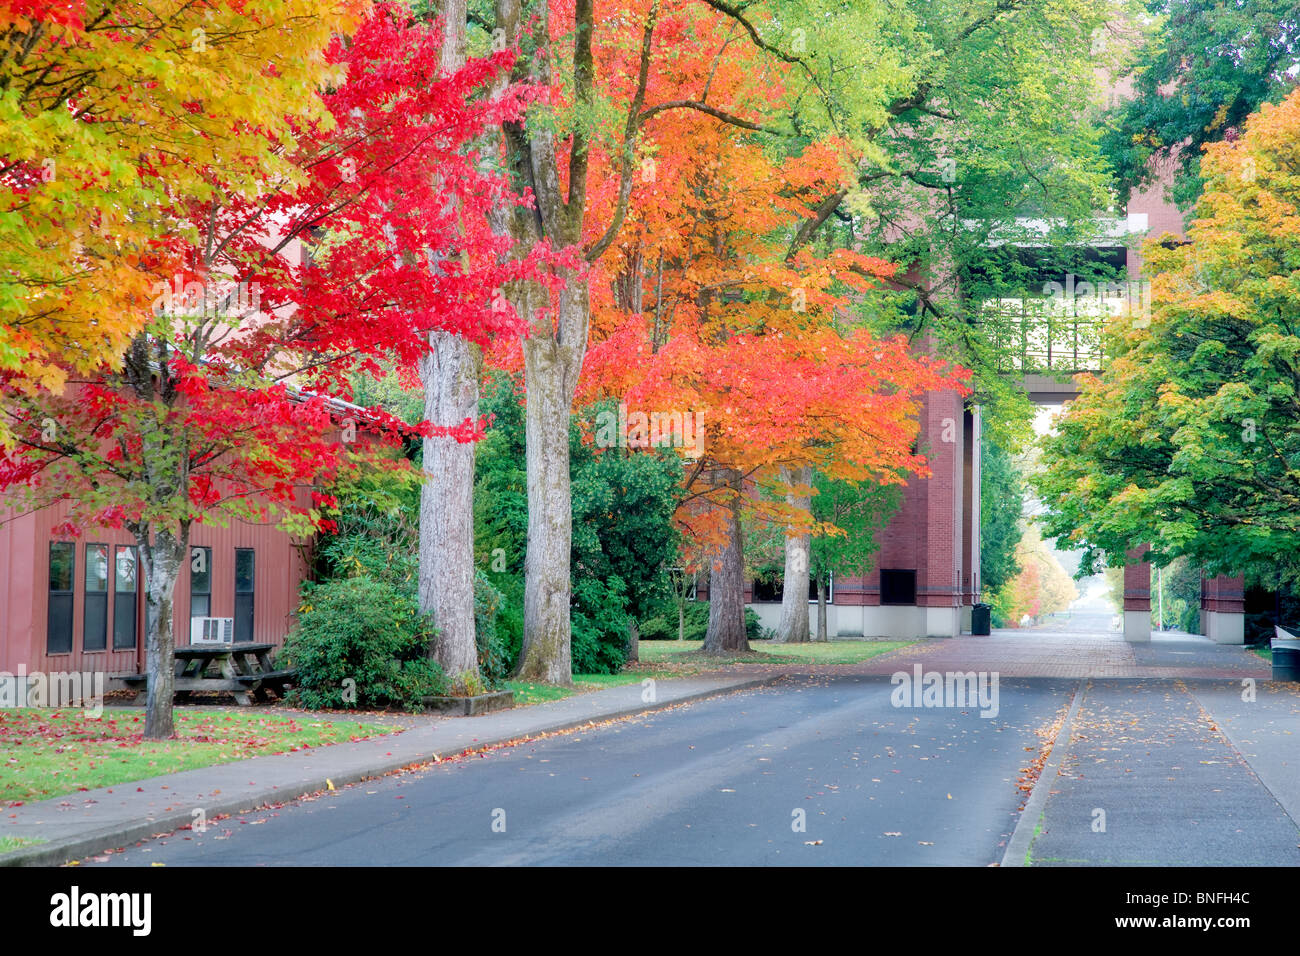 Road to Agricultural and Life Sciences building with fall color. Oregon State University. - Stock Image